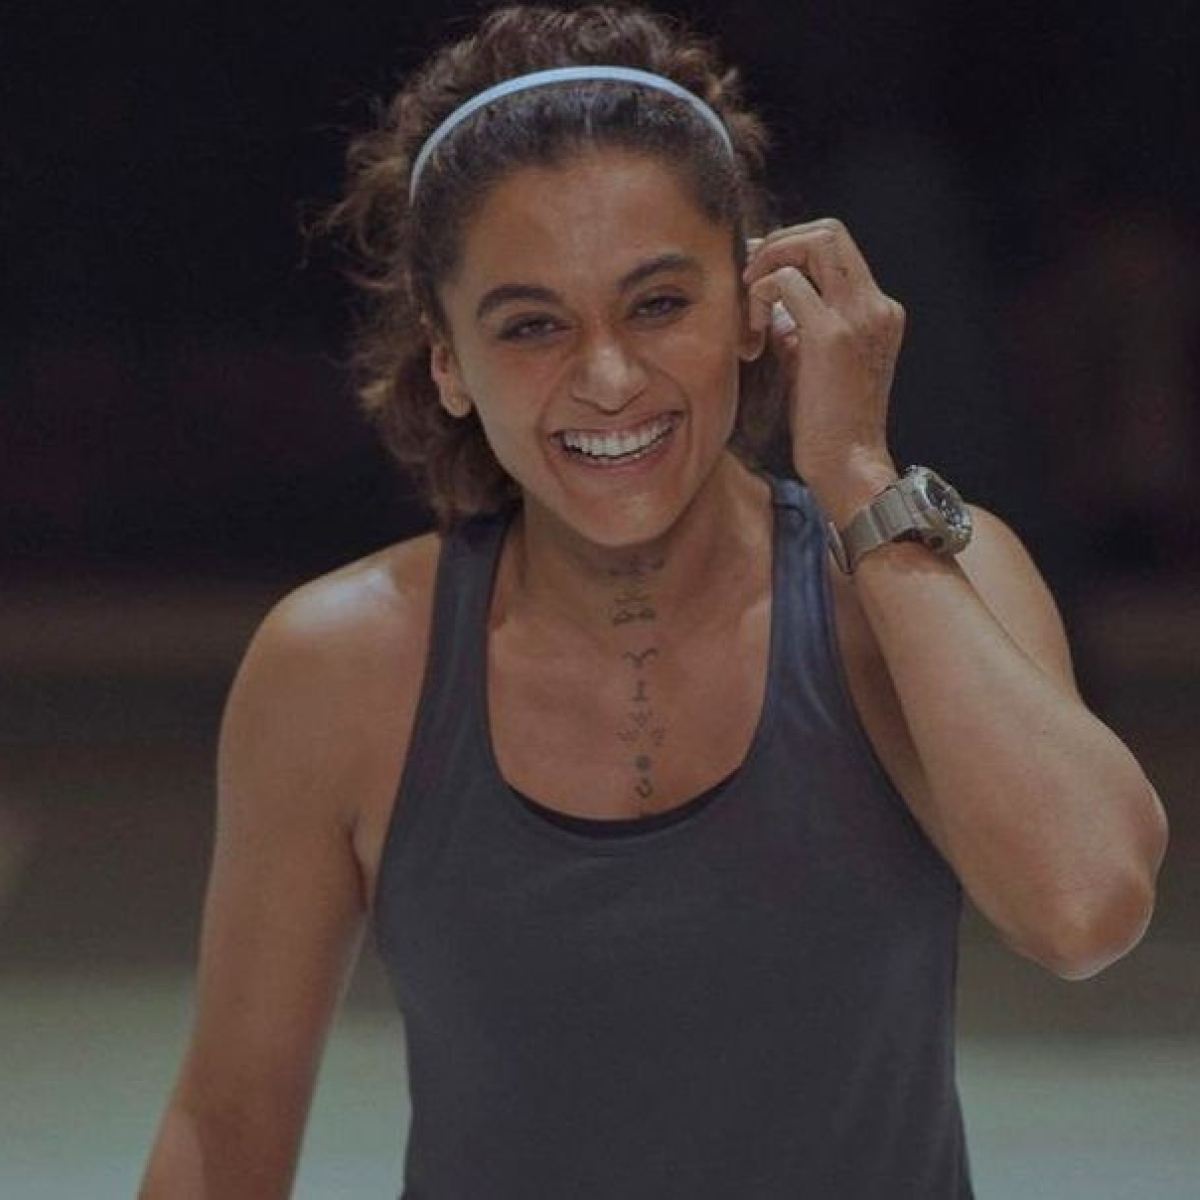 Watch: Taapsee Pannu shares epic transformation video while training for 'Rashmi Rocket'